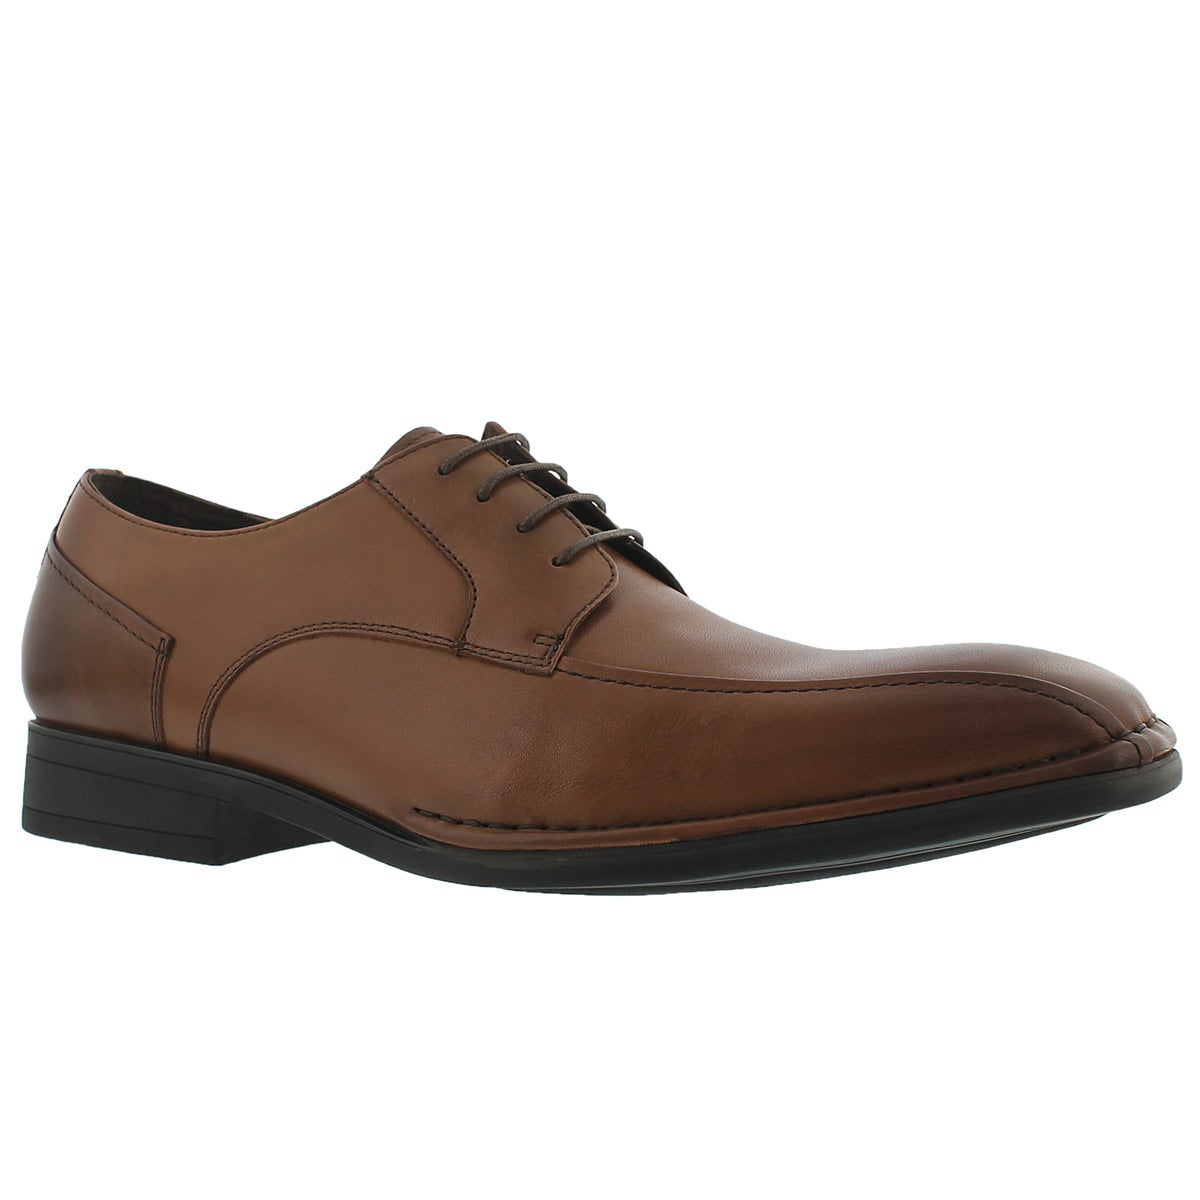 Mns Romeo cognac dress oxford - Wide